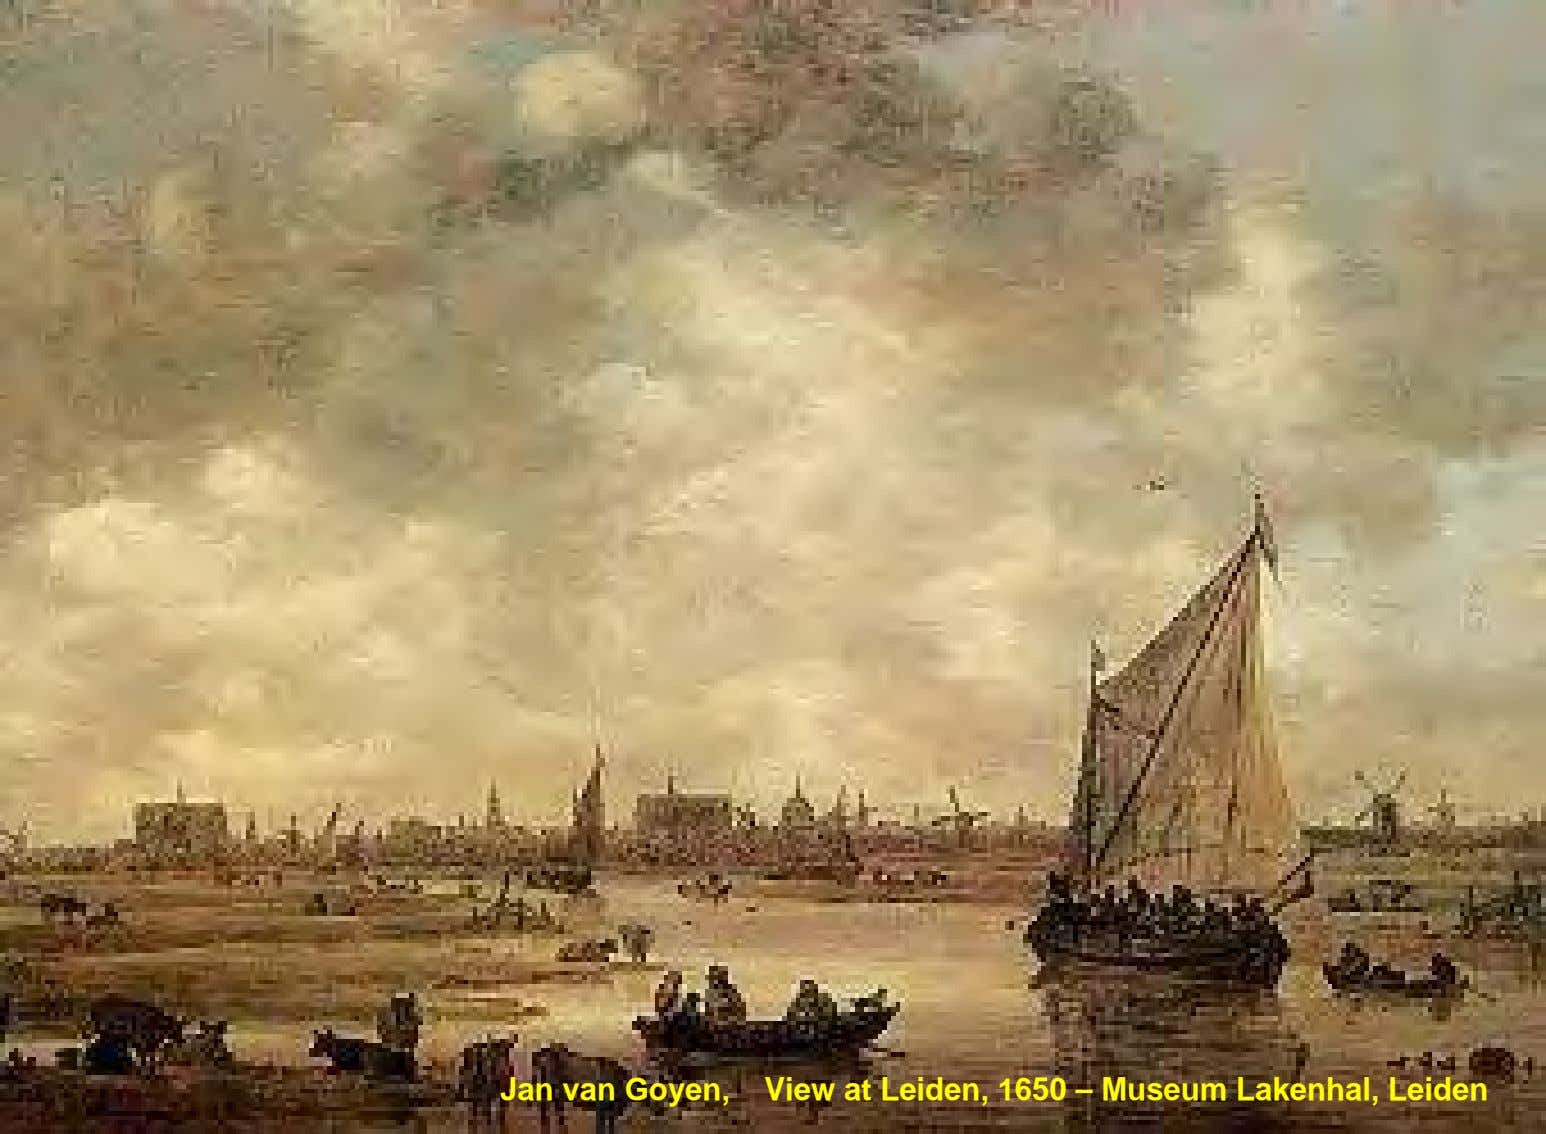 Jan van Goyen, View at Leiden, 1650 – Museum Lakenhal, Leiden